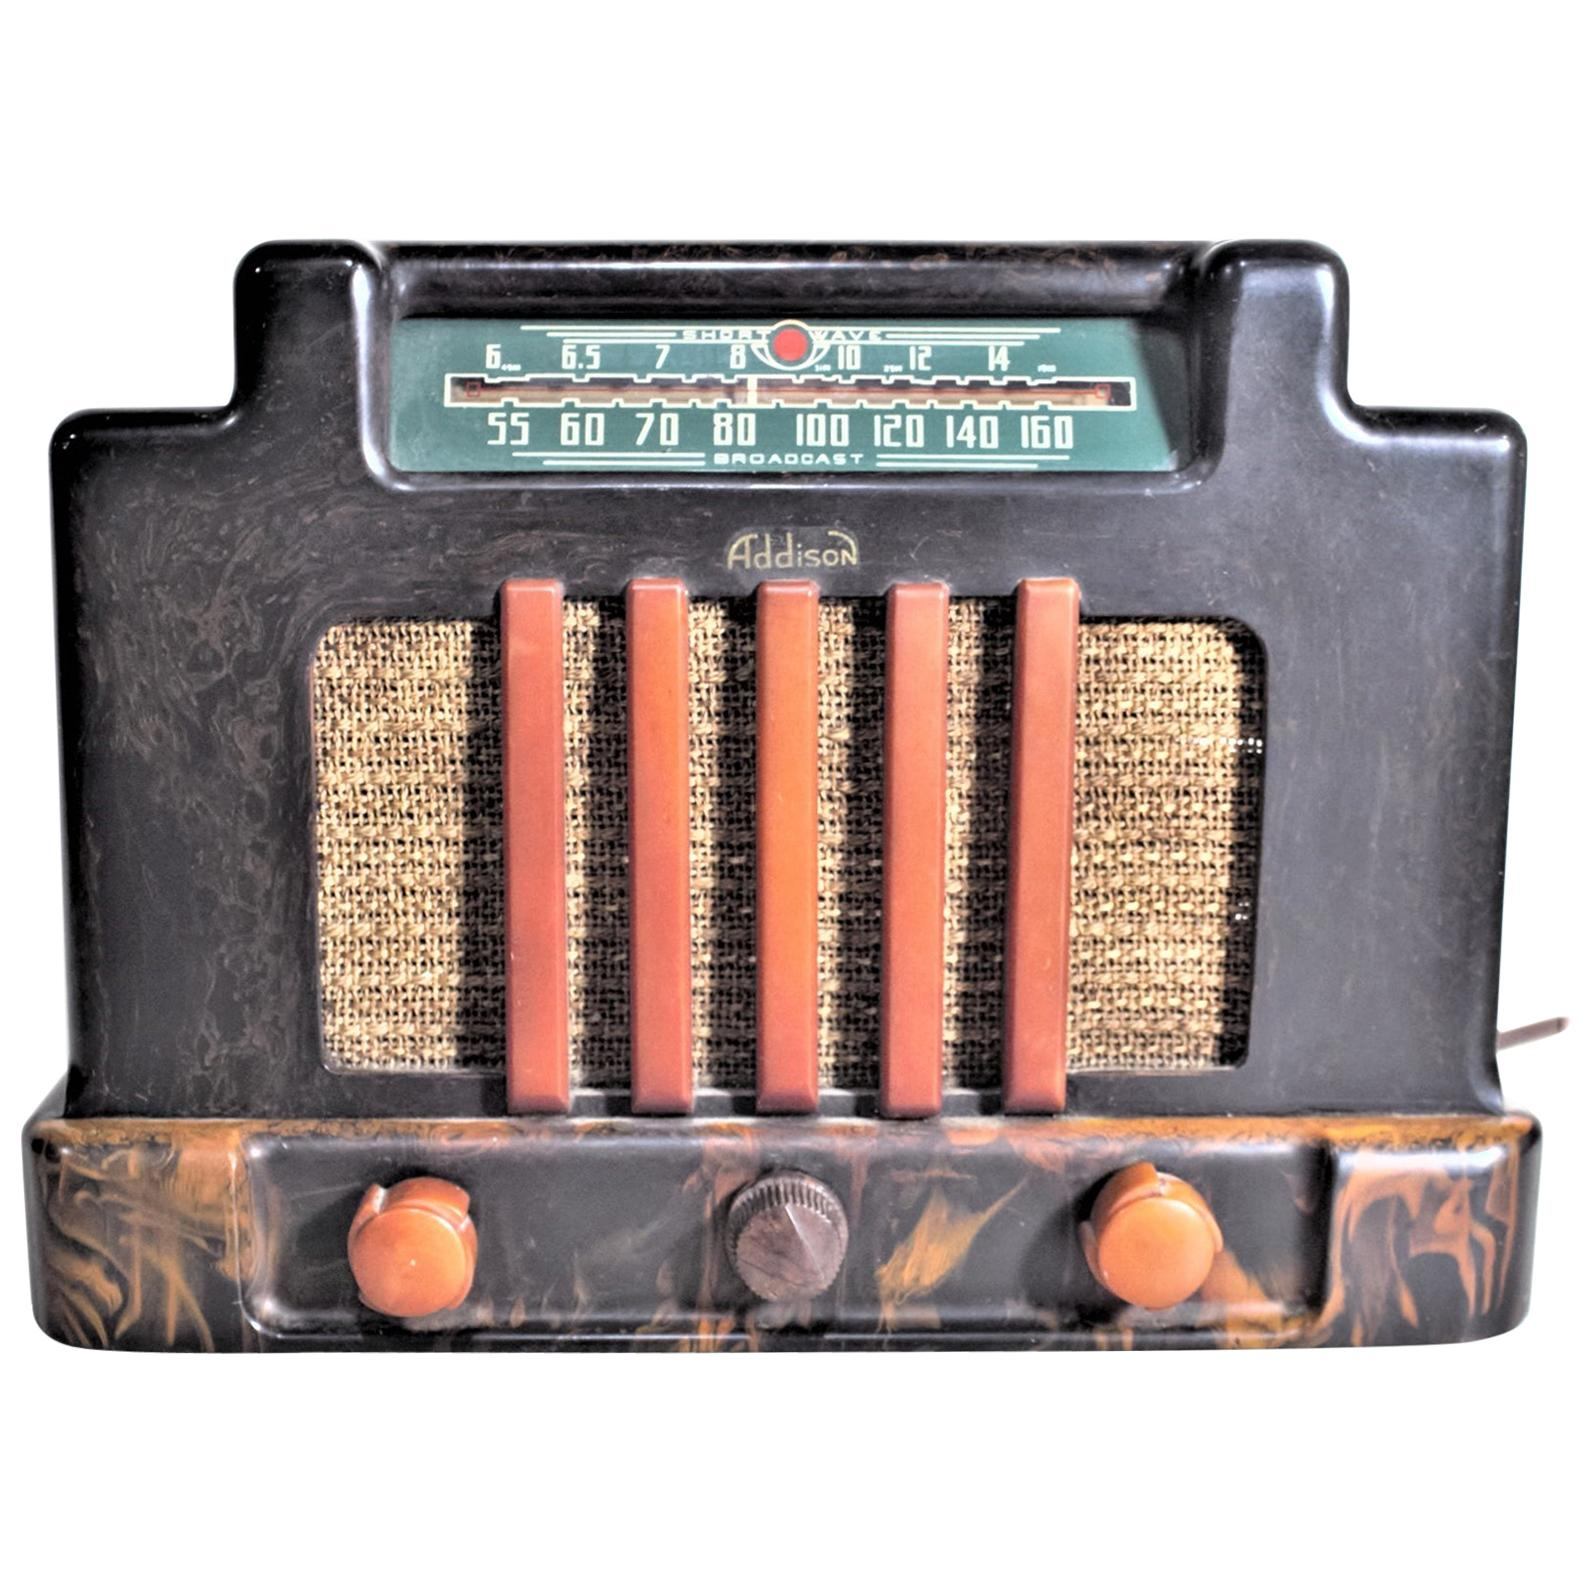 Addison Model 5D Black & Butterscotch Marbled Catalin 'Courthouse' Tube Radio